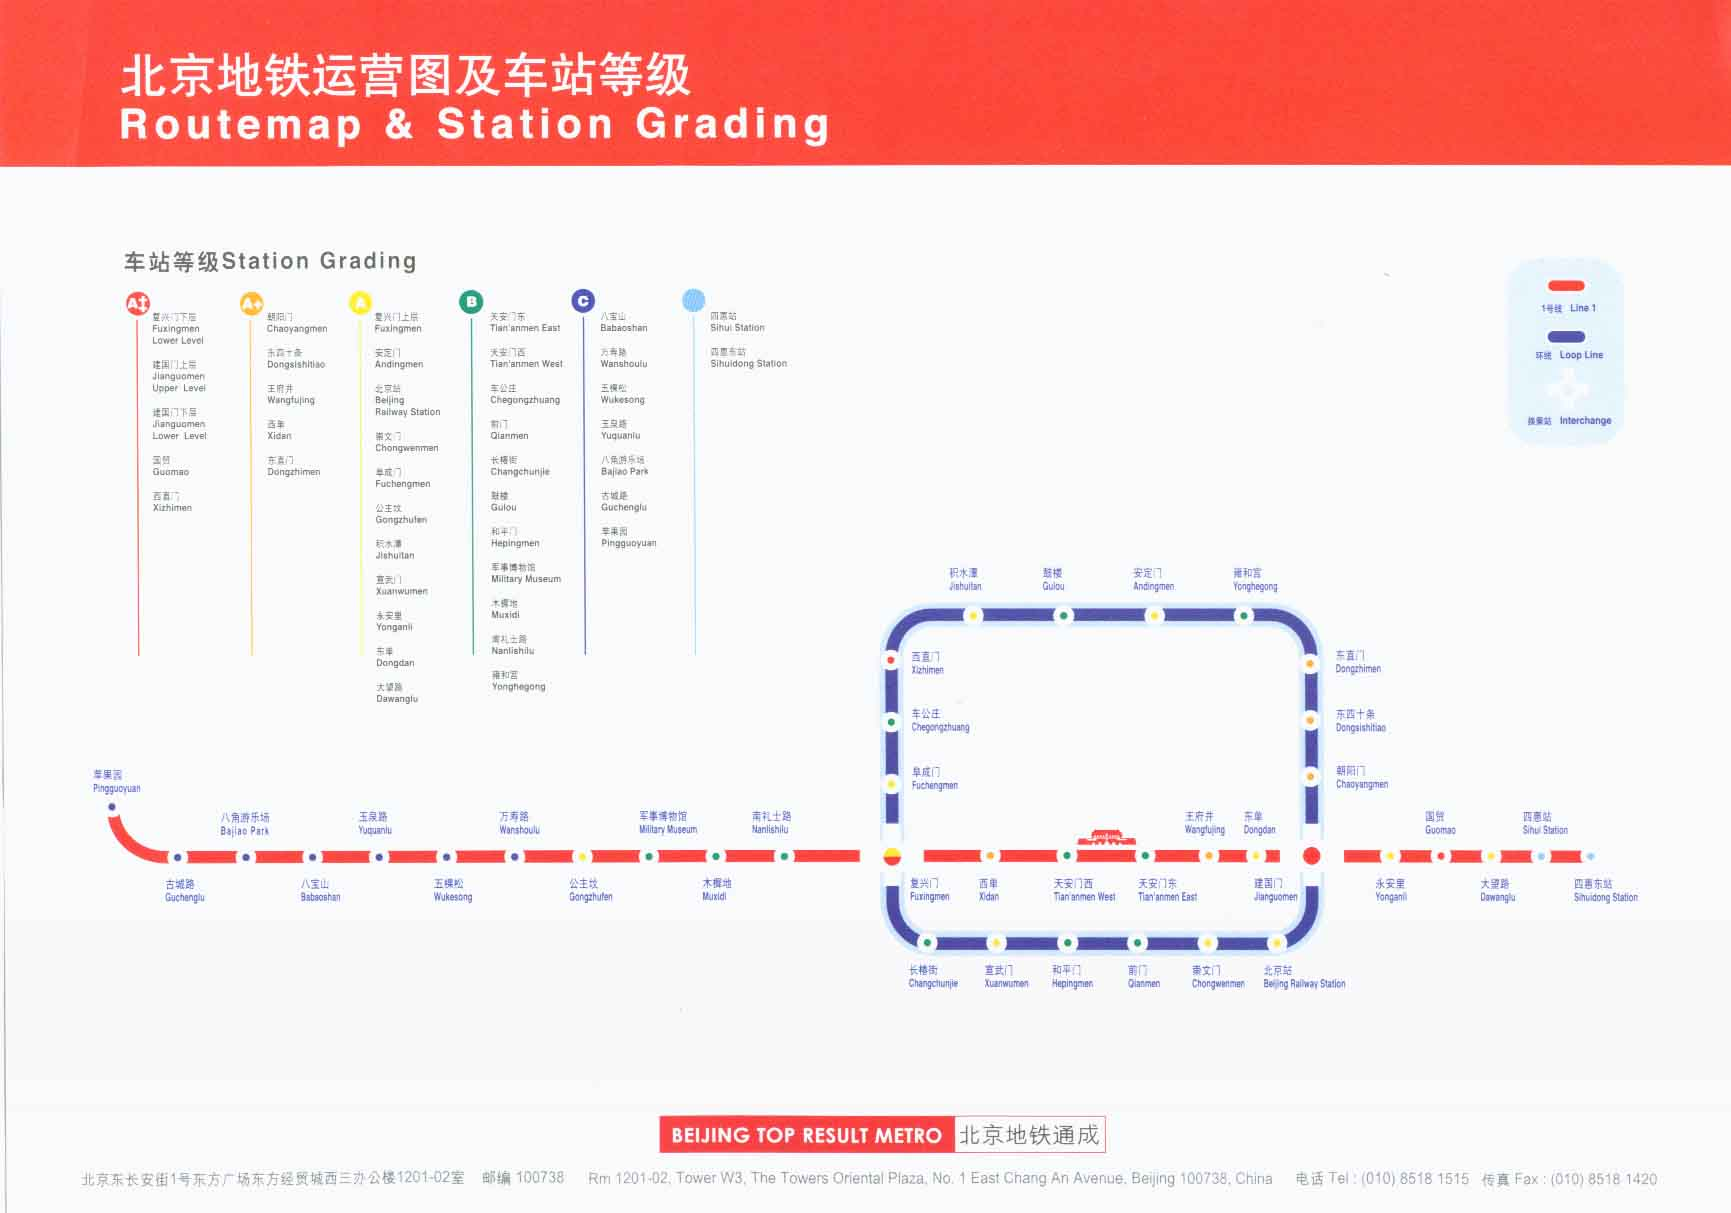 Subways Transport Subway Wiring Schematic Beijing Archival